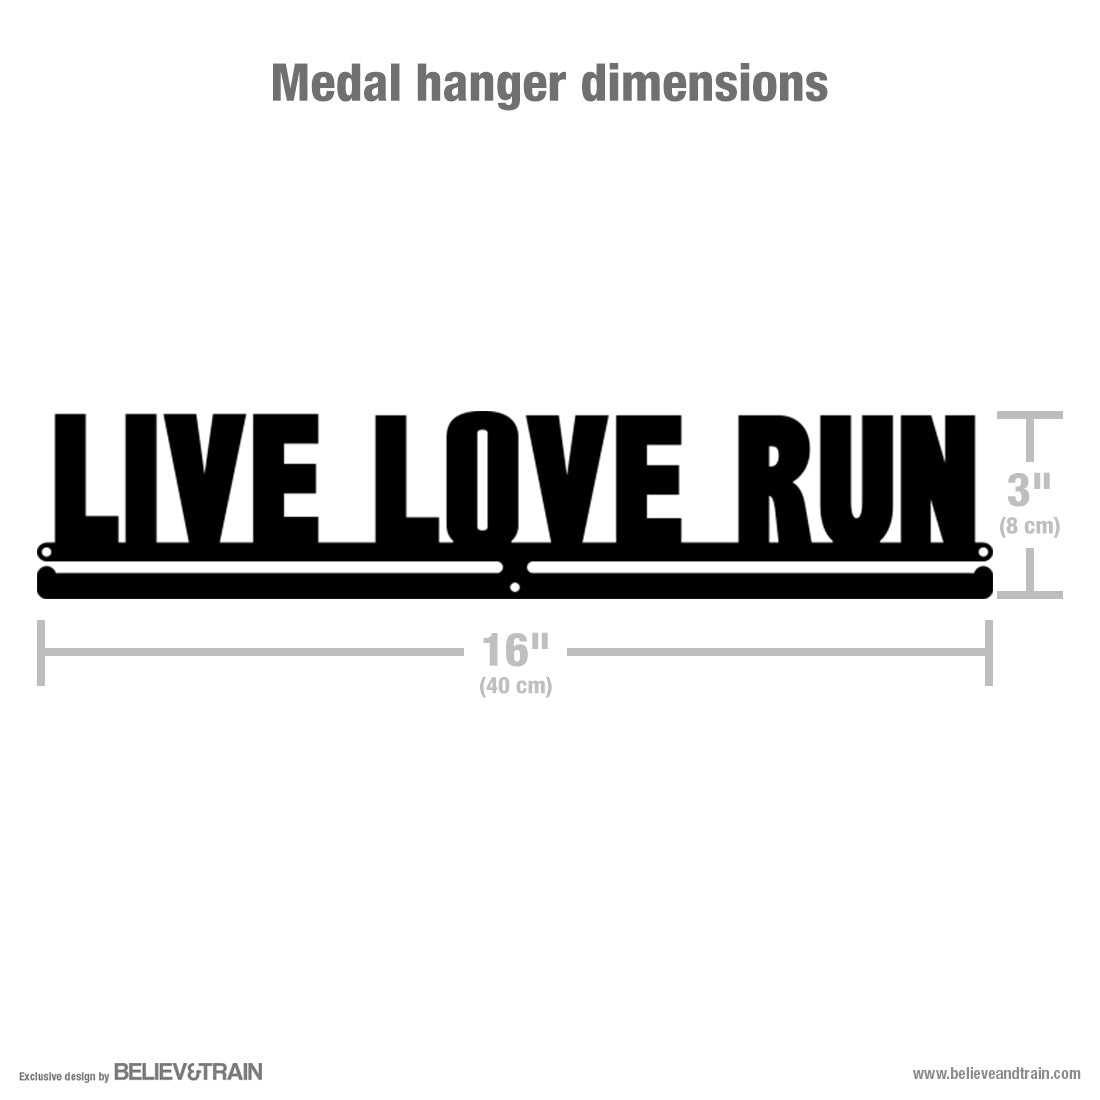 Live Love Run - Running Medal Hanger